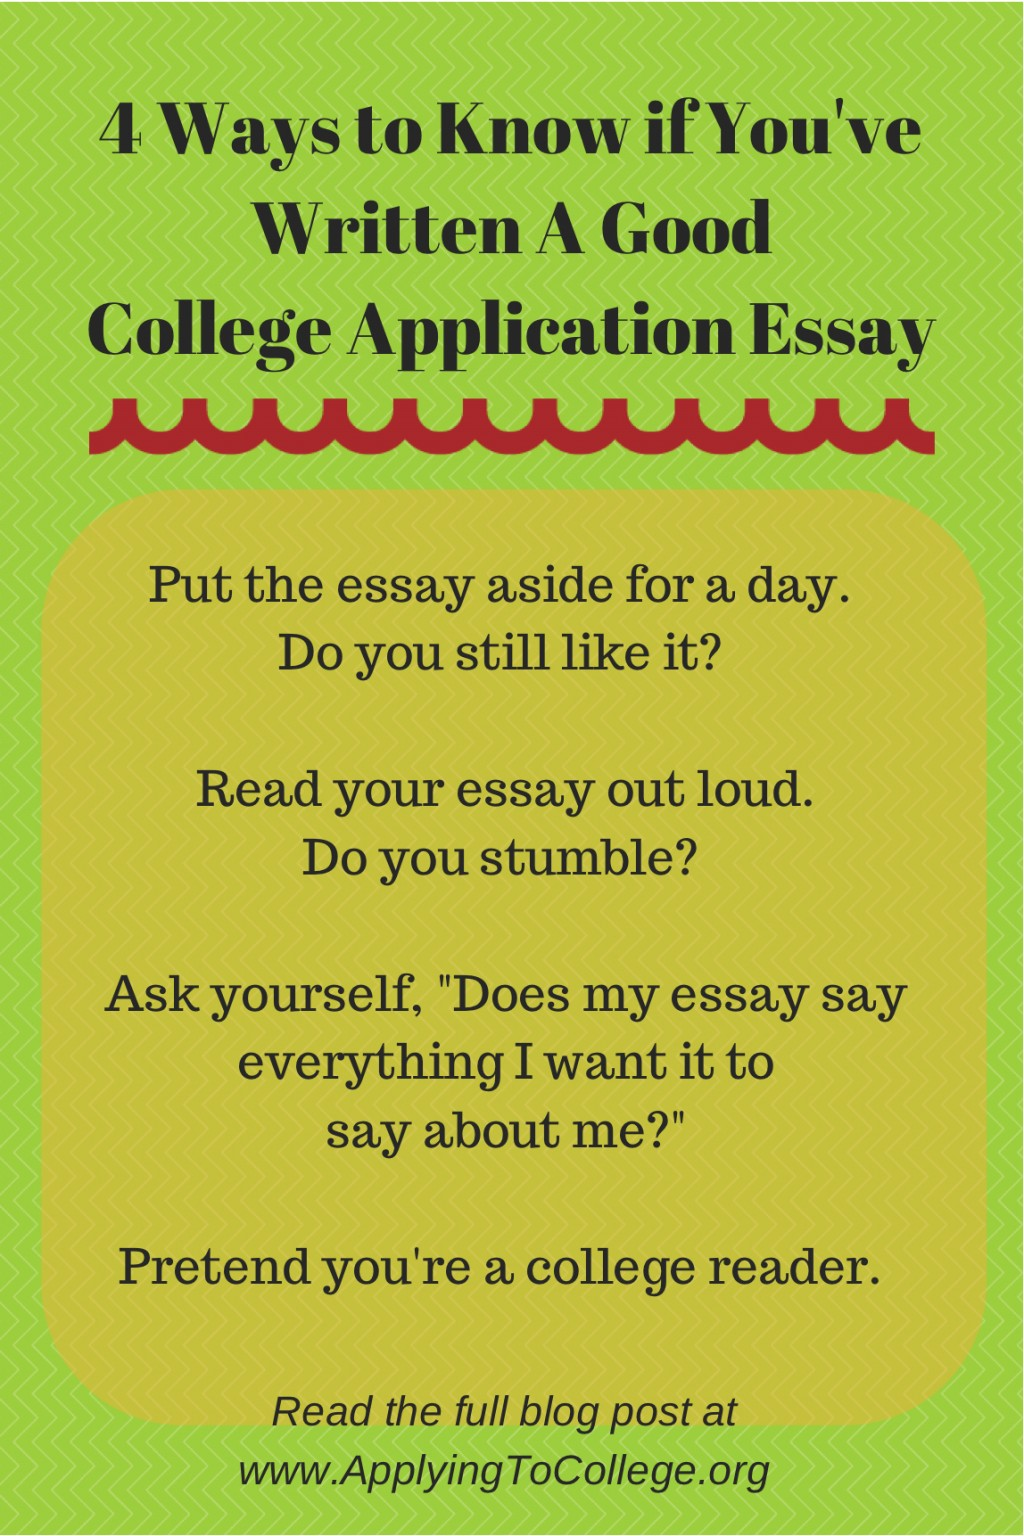 018 Essay Example Help Me Write My 4ways To Know If Youve Written Shocking College For Free App Argumentative Large